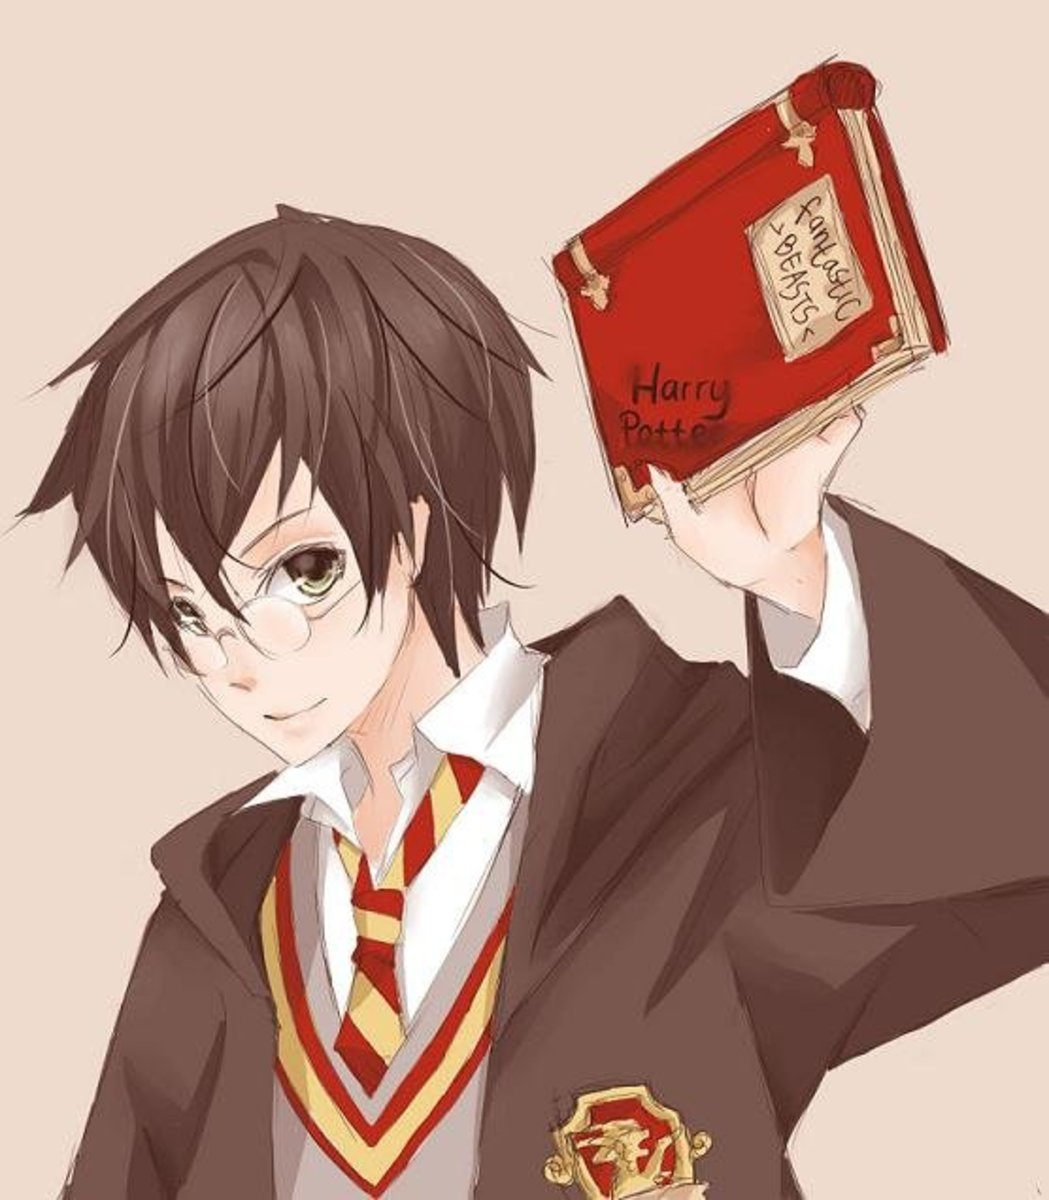 Anime Characters Born On February 7 : Reasons to hate the name james sirius potter